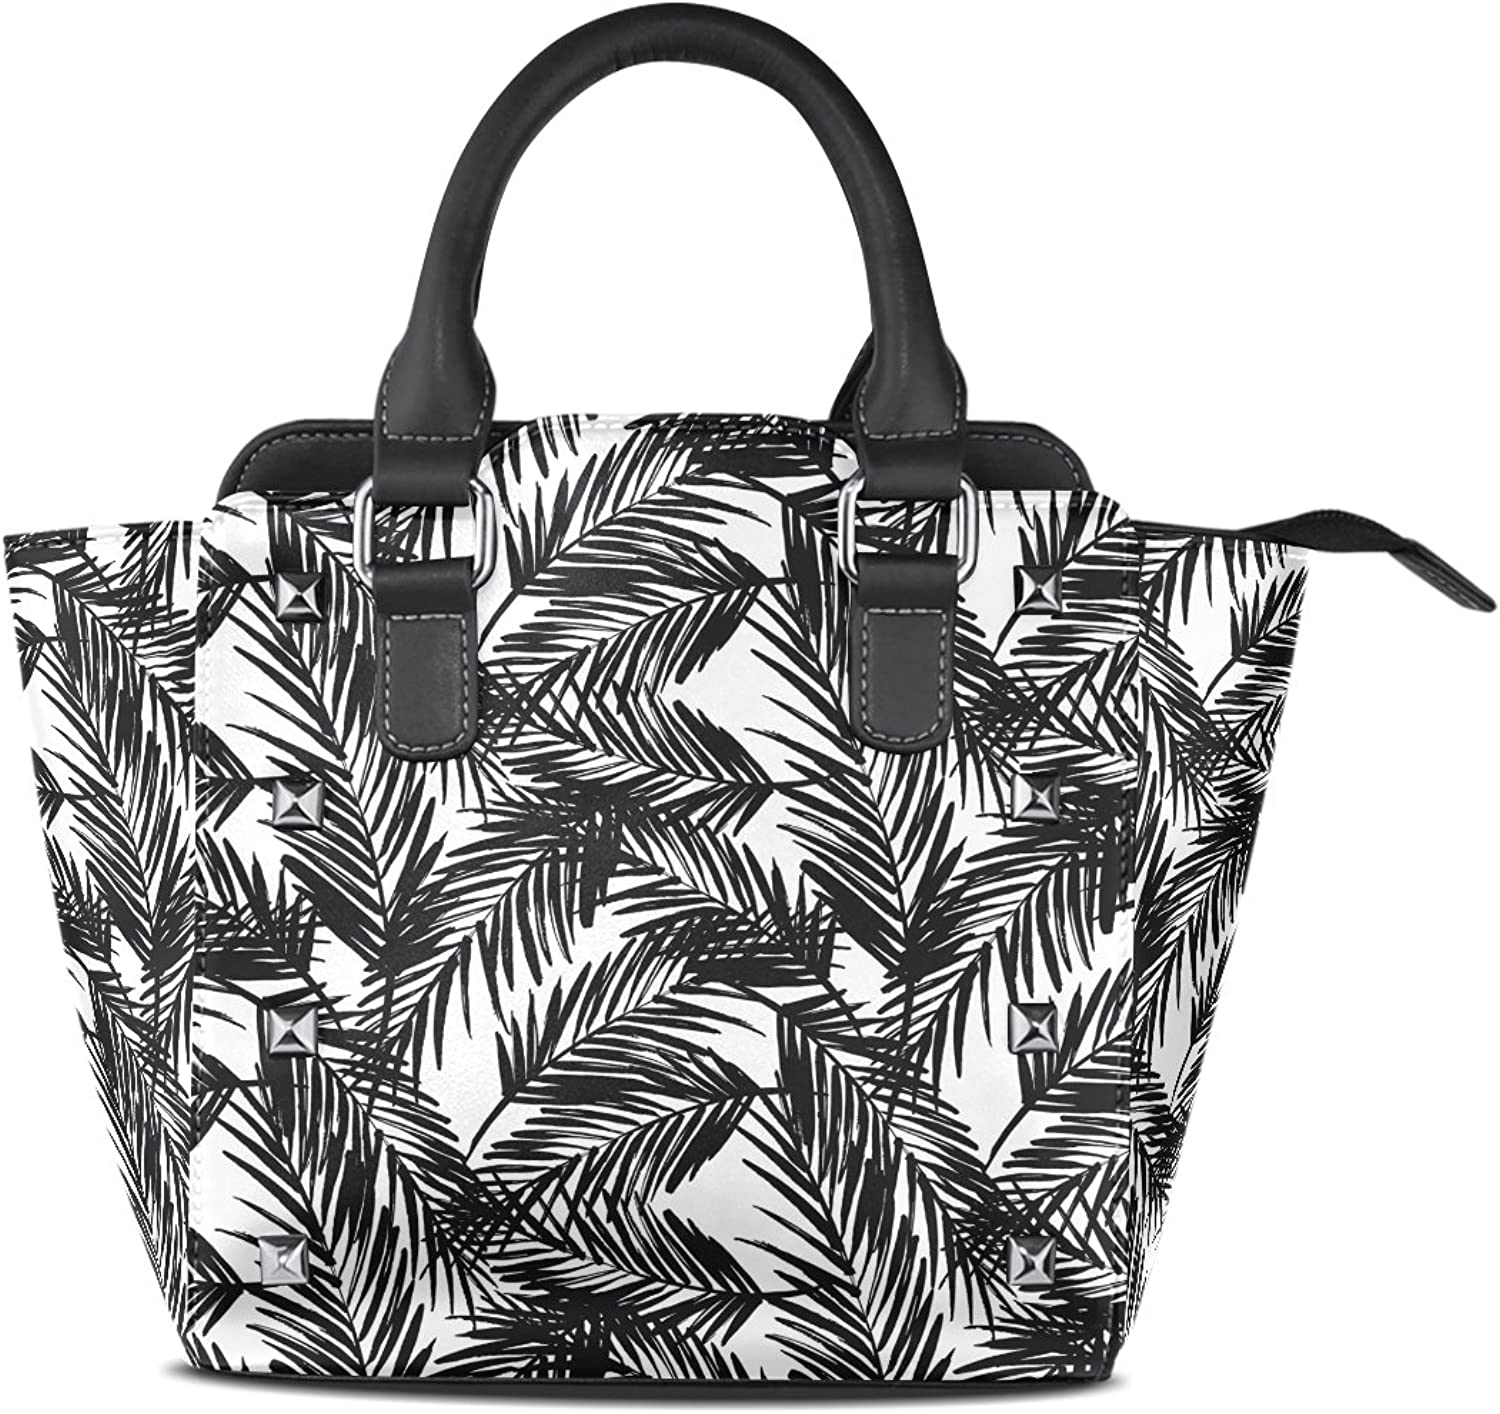 Sunlome Exotic Palm Leaves Print Women's Leather Tote Shoulder Bags Handbags